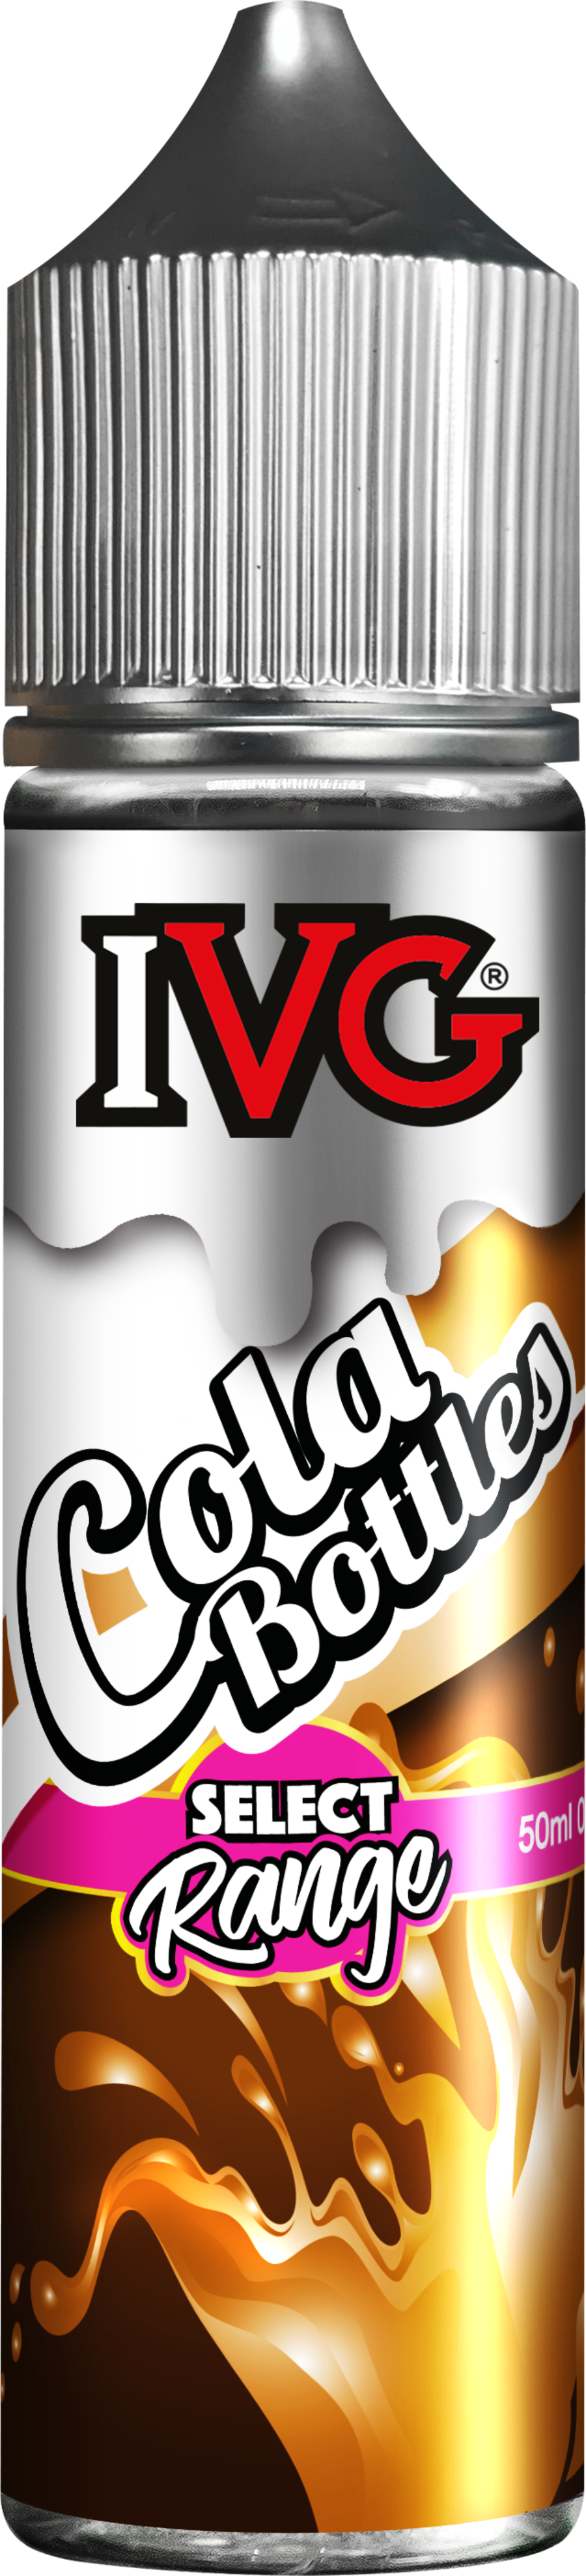 Cola Bottles By I VG Sweets 50ml 0mg